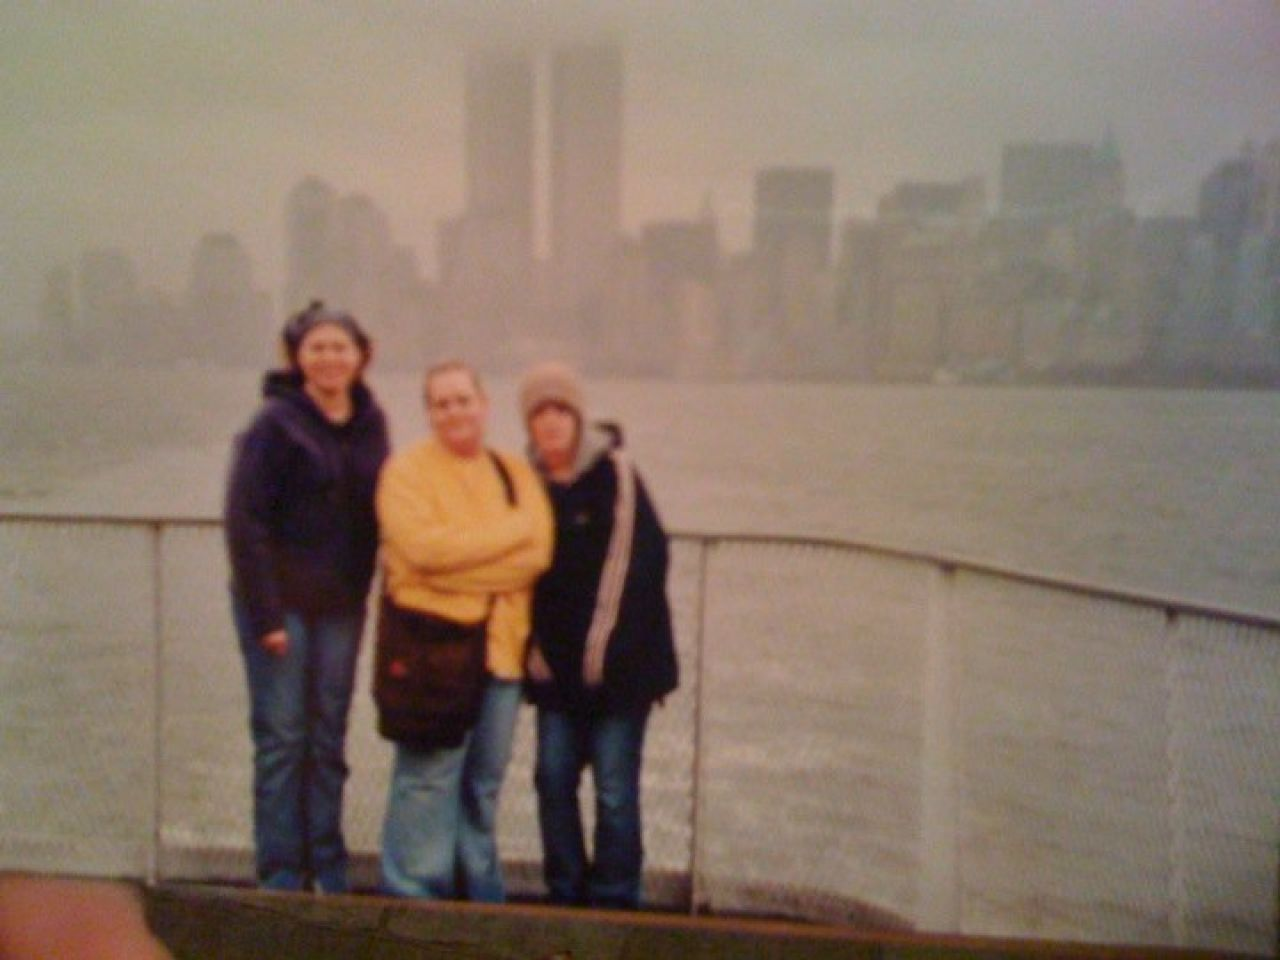 Jennifer Gibson and friends pose along the New York City skyline with the World Trade Center Towers in the background